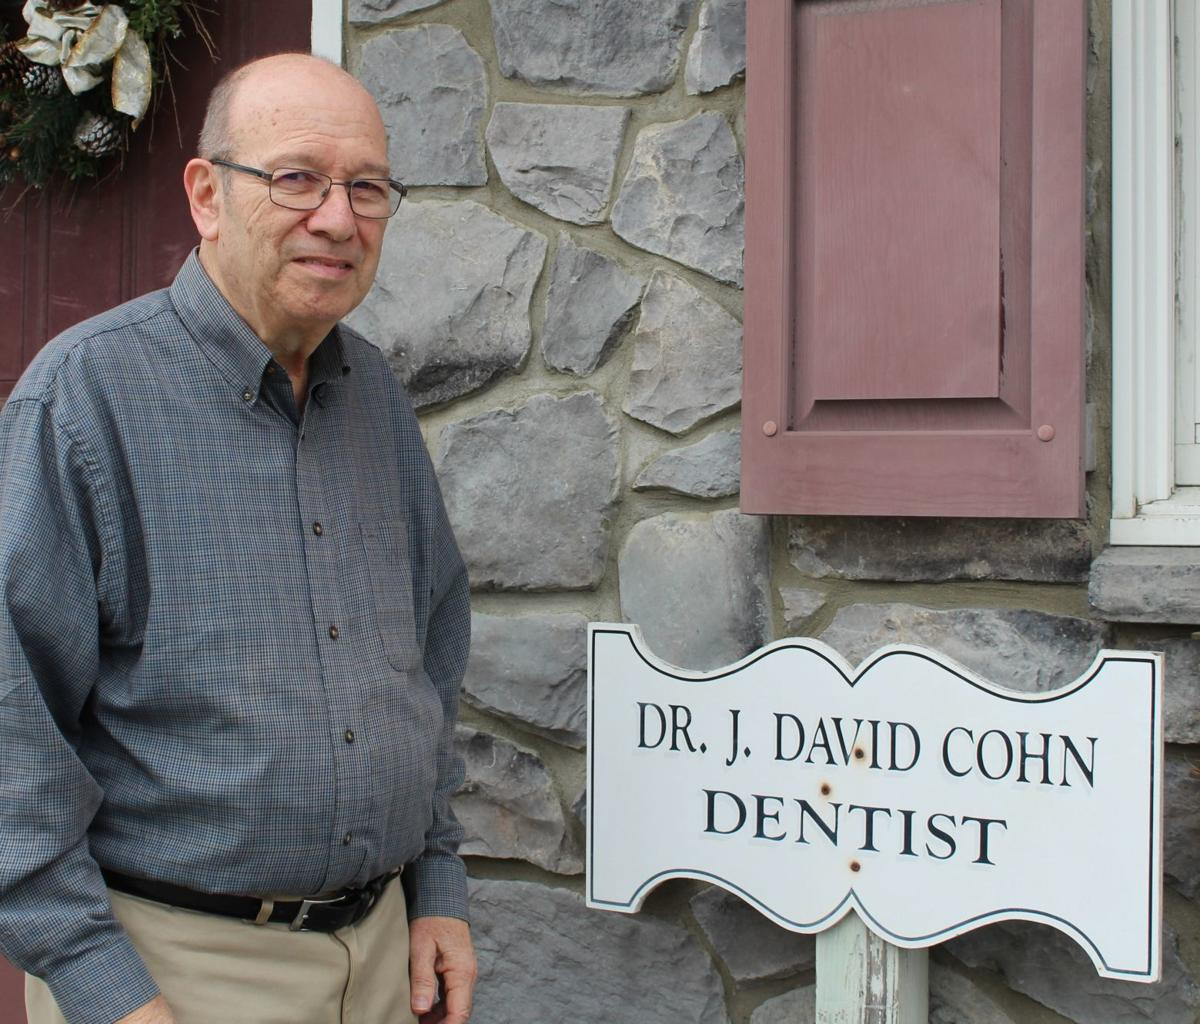 Dr. Cohn retires after 46 years as Cecilton's dentist